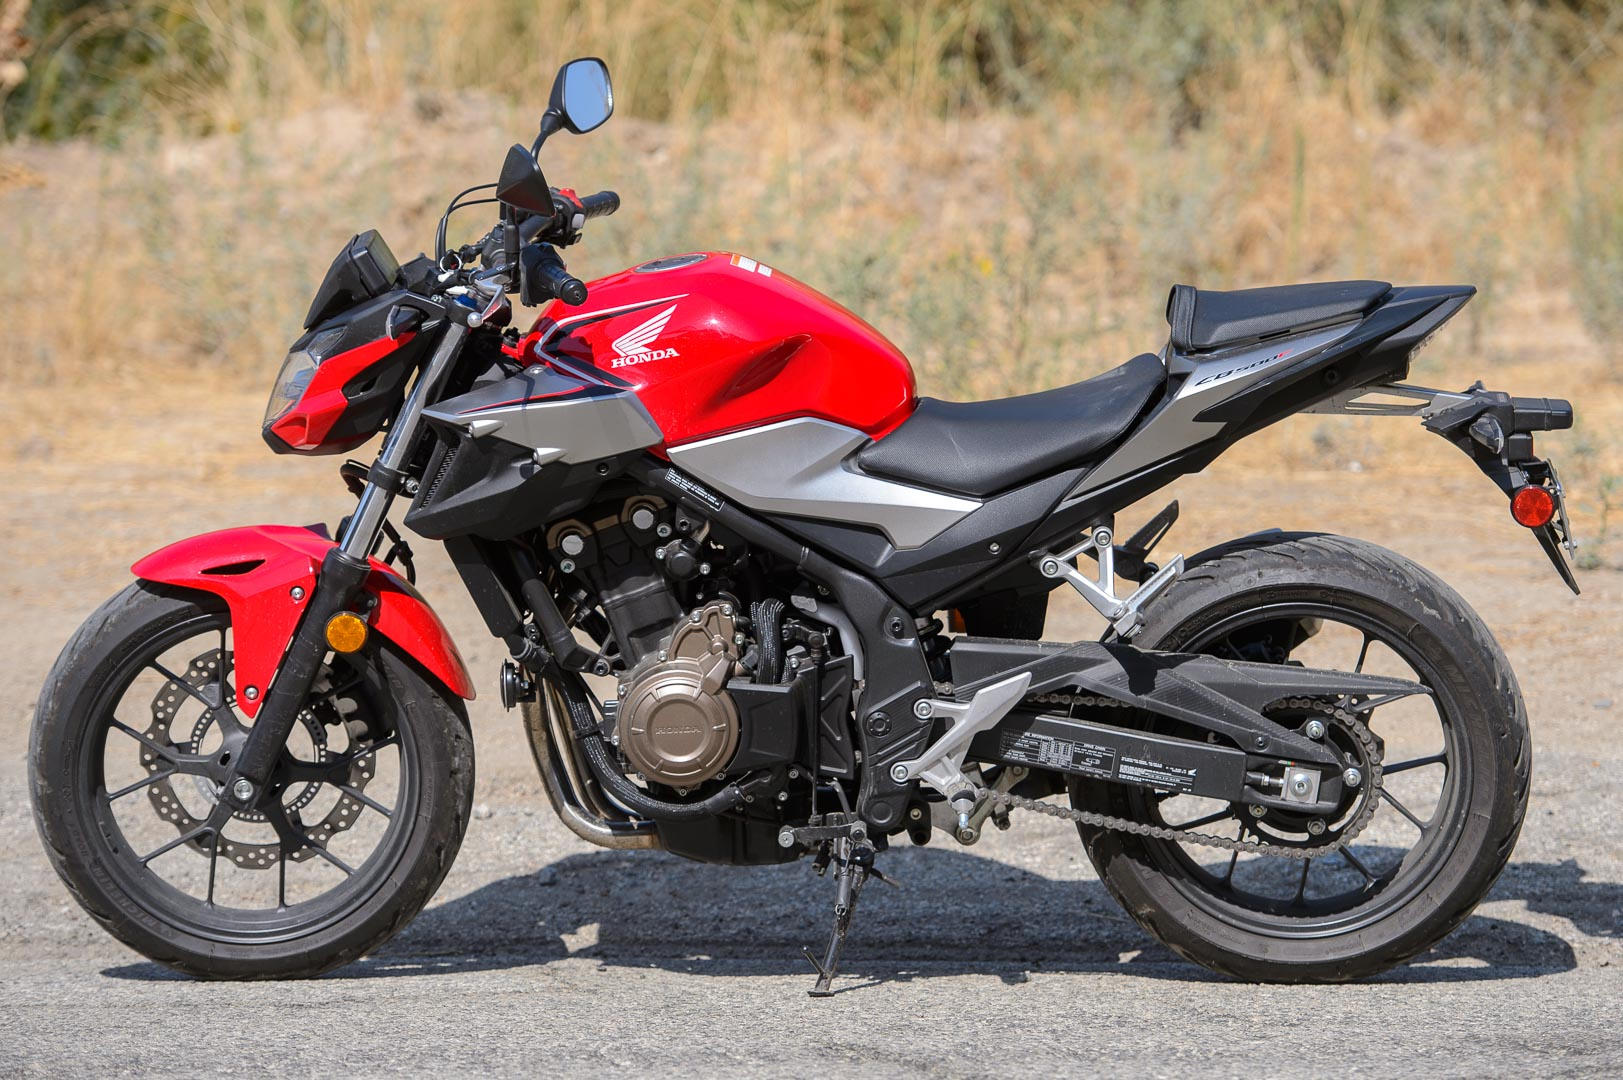 2019 Honda CB500F Review: MSRP